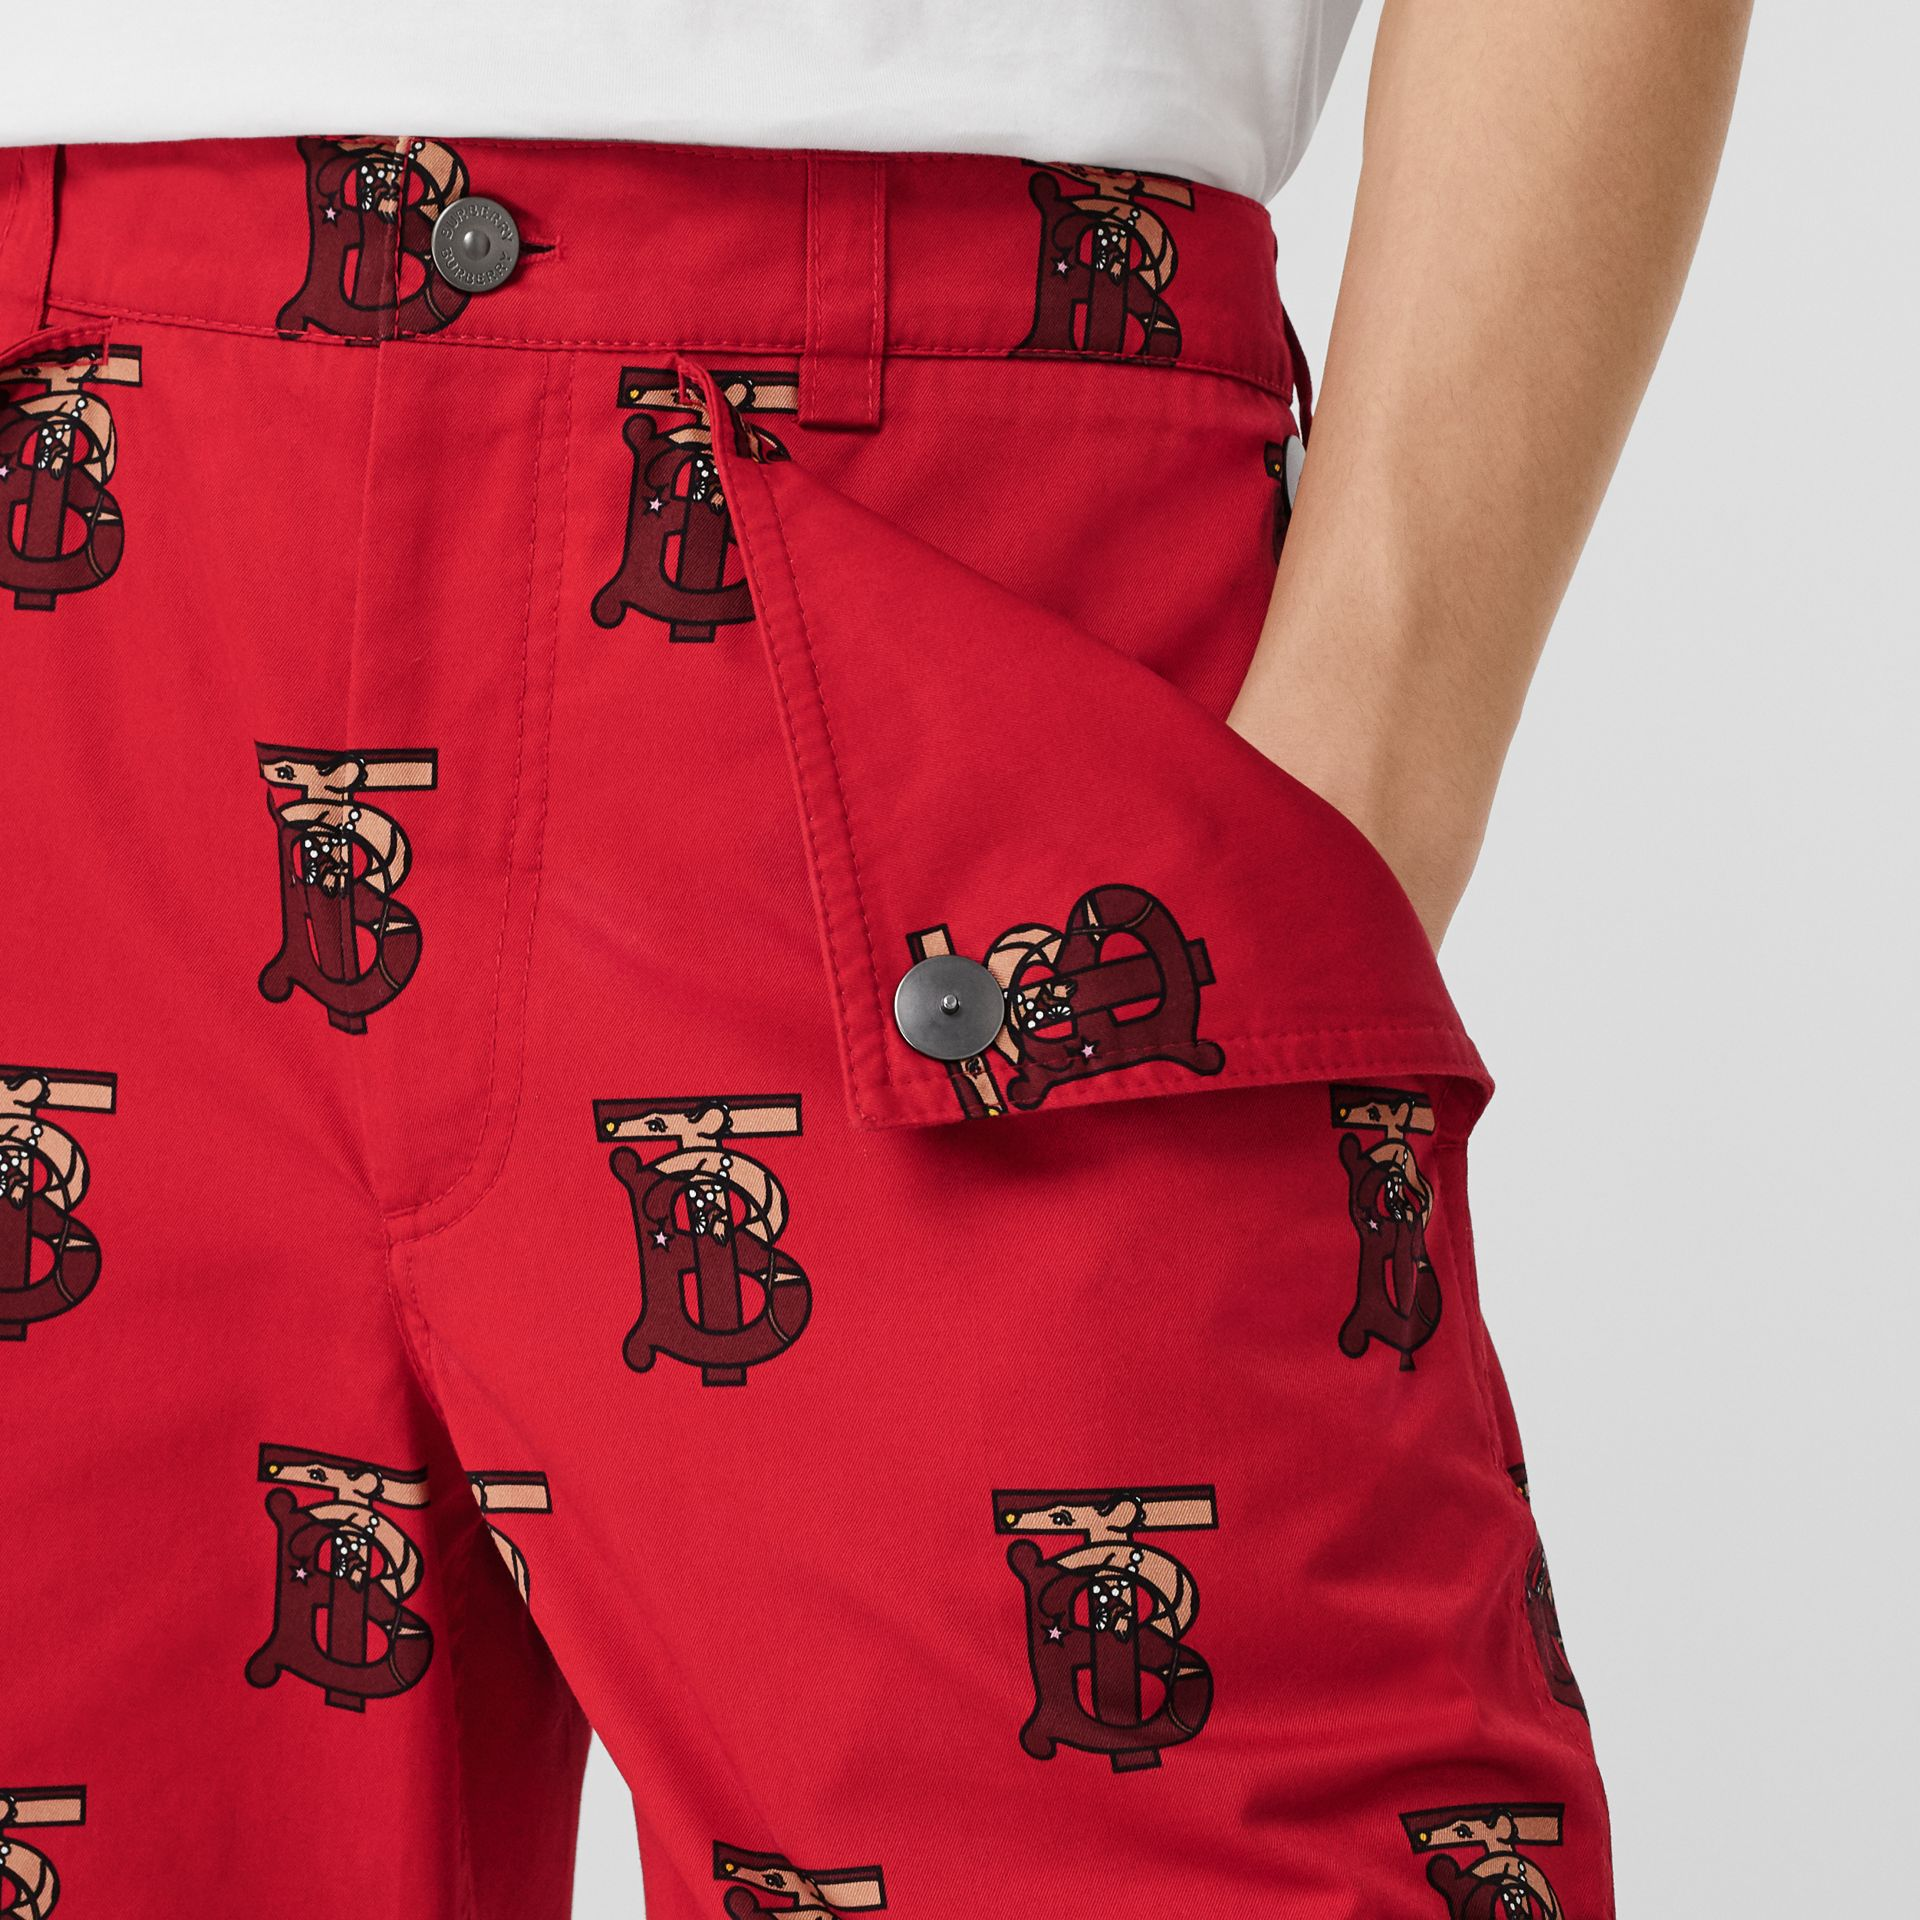 Monogram Motif Cotton Tailored Shorts in Bright Red - Men | Burberry - gallery image 1